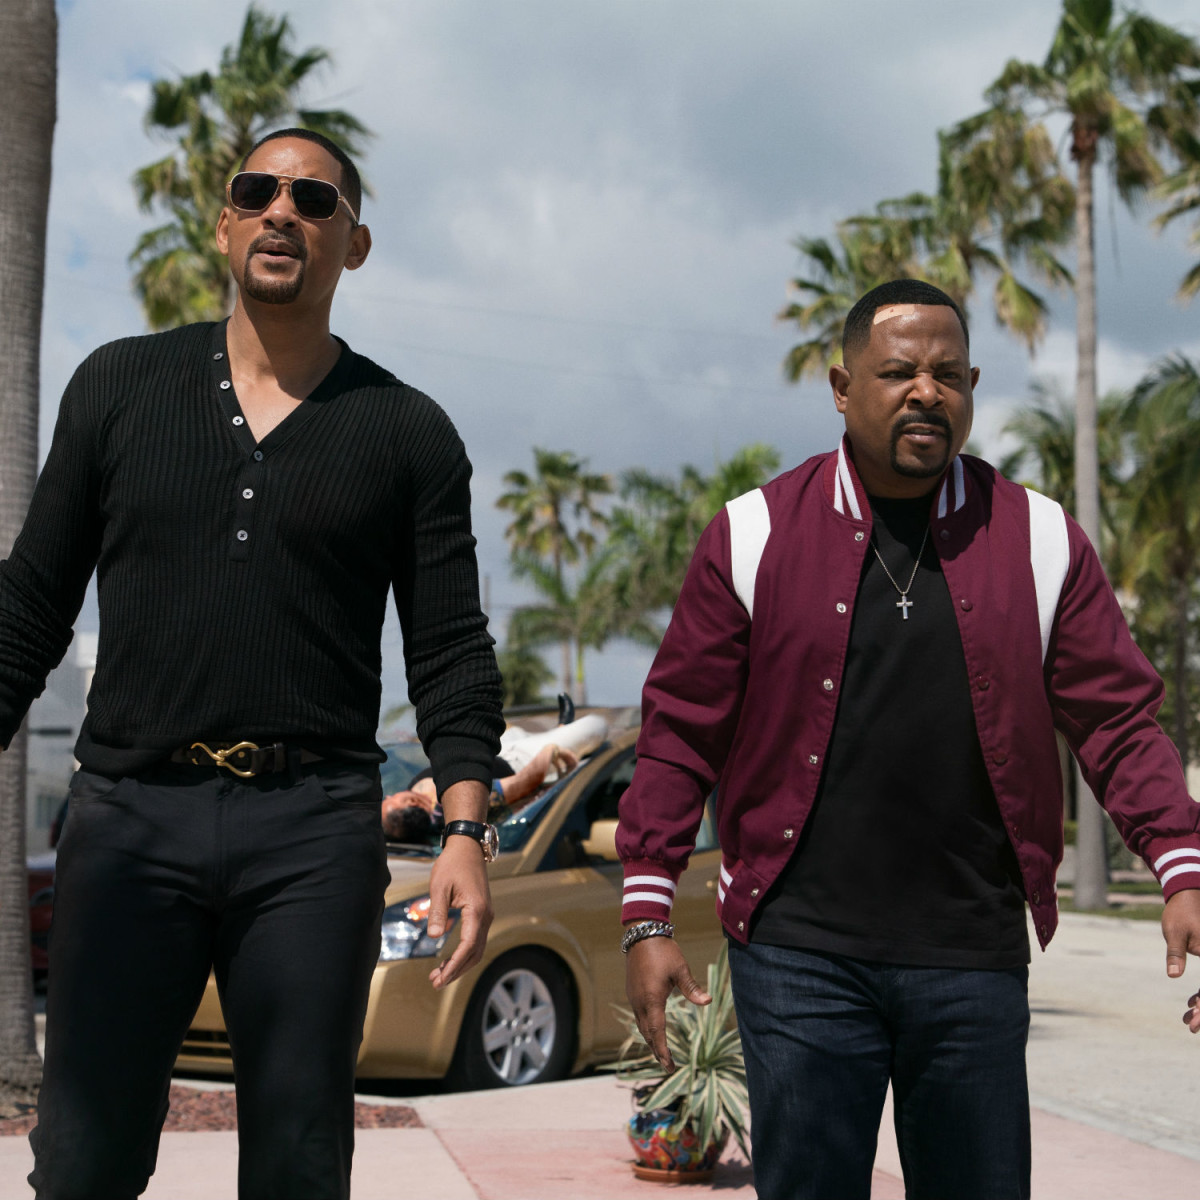 Will Smith and Martin Lawrence in Bad Boys for Life